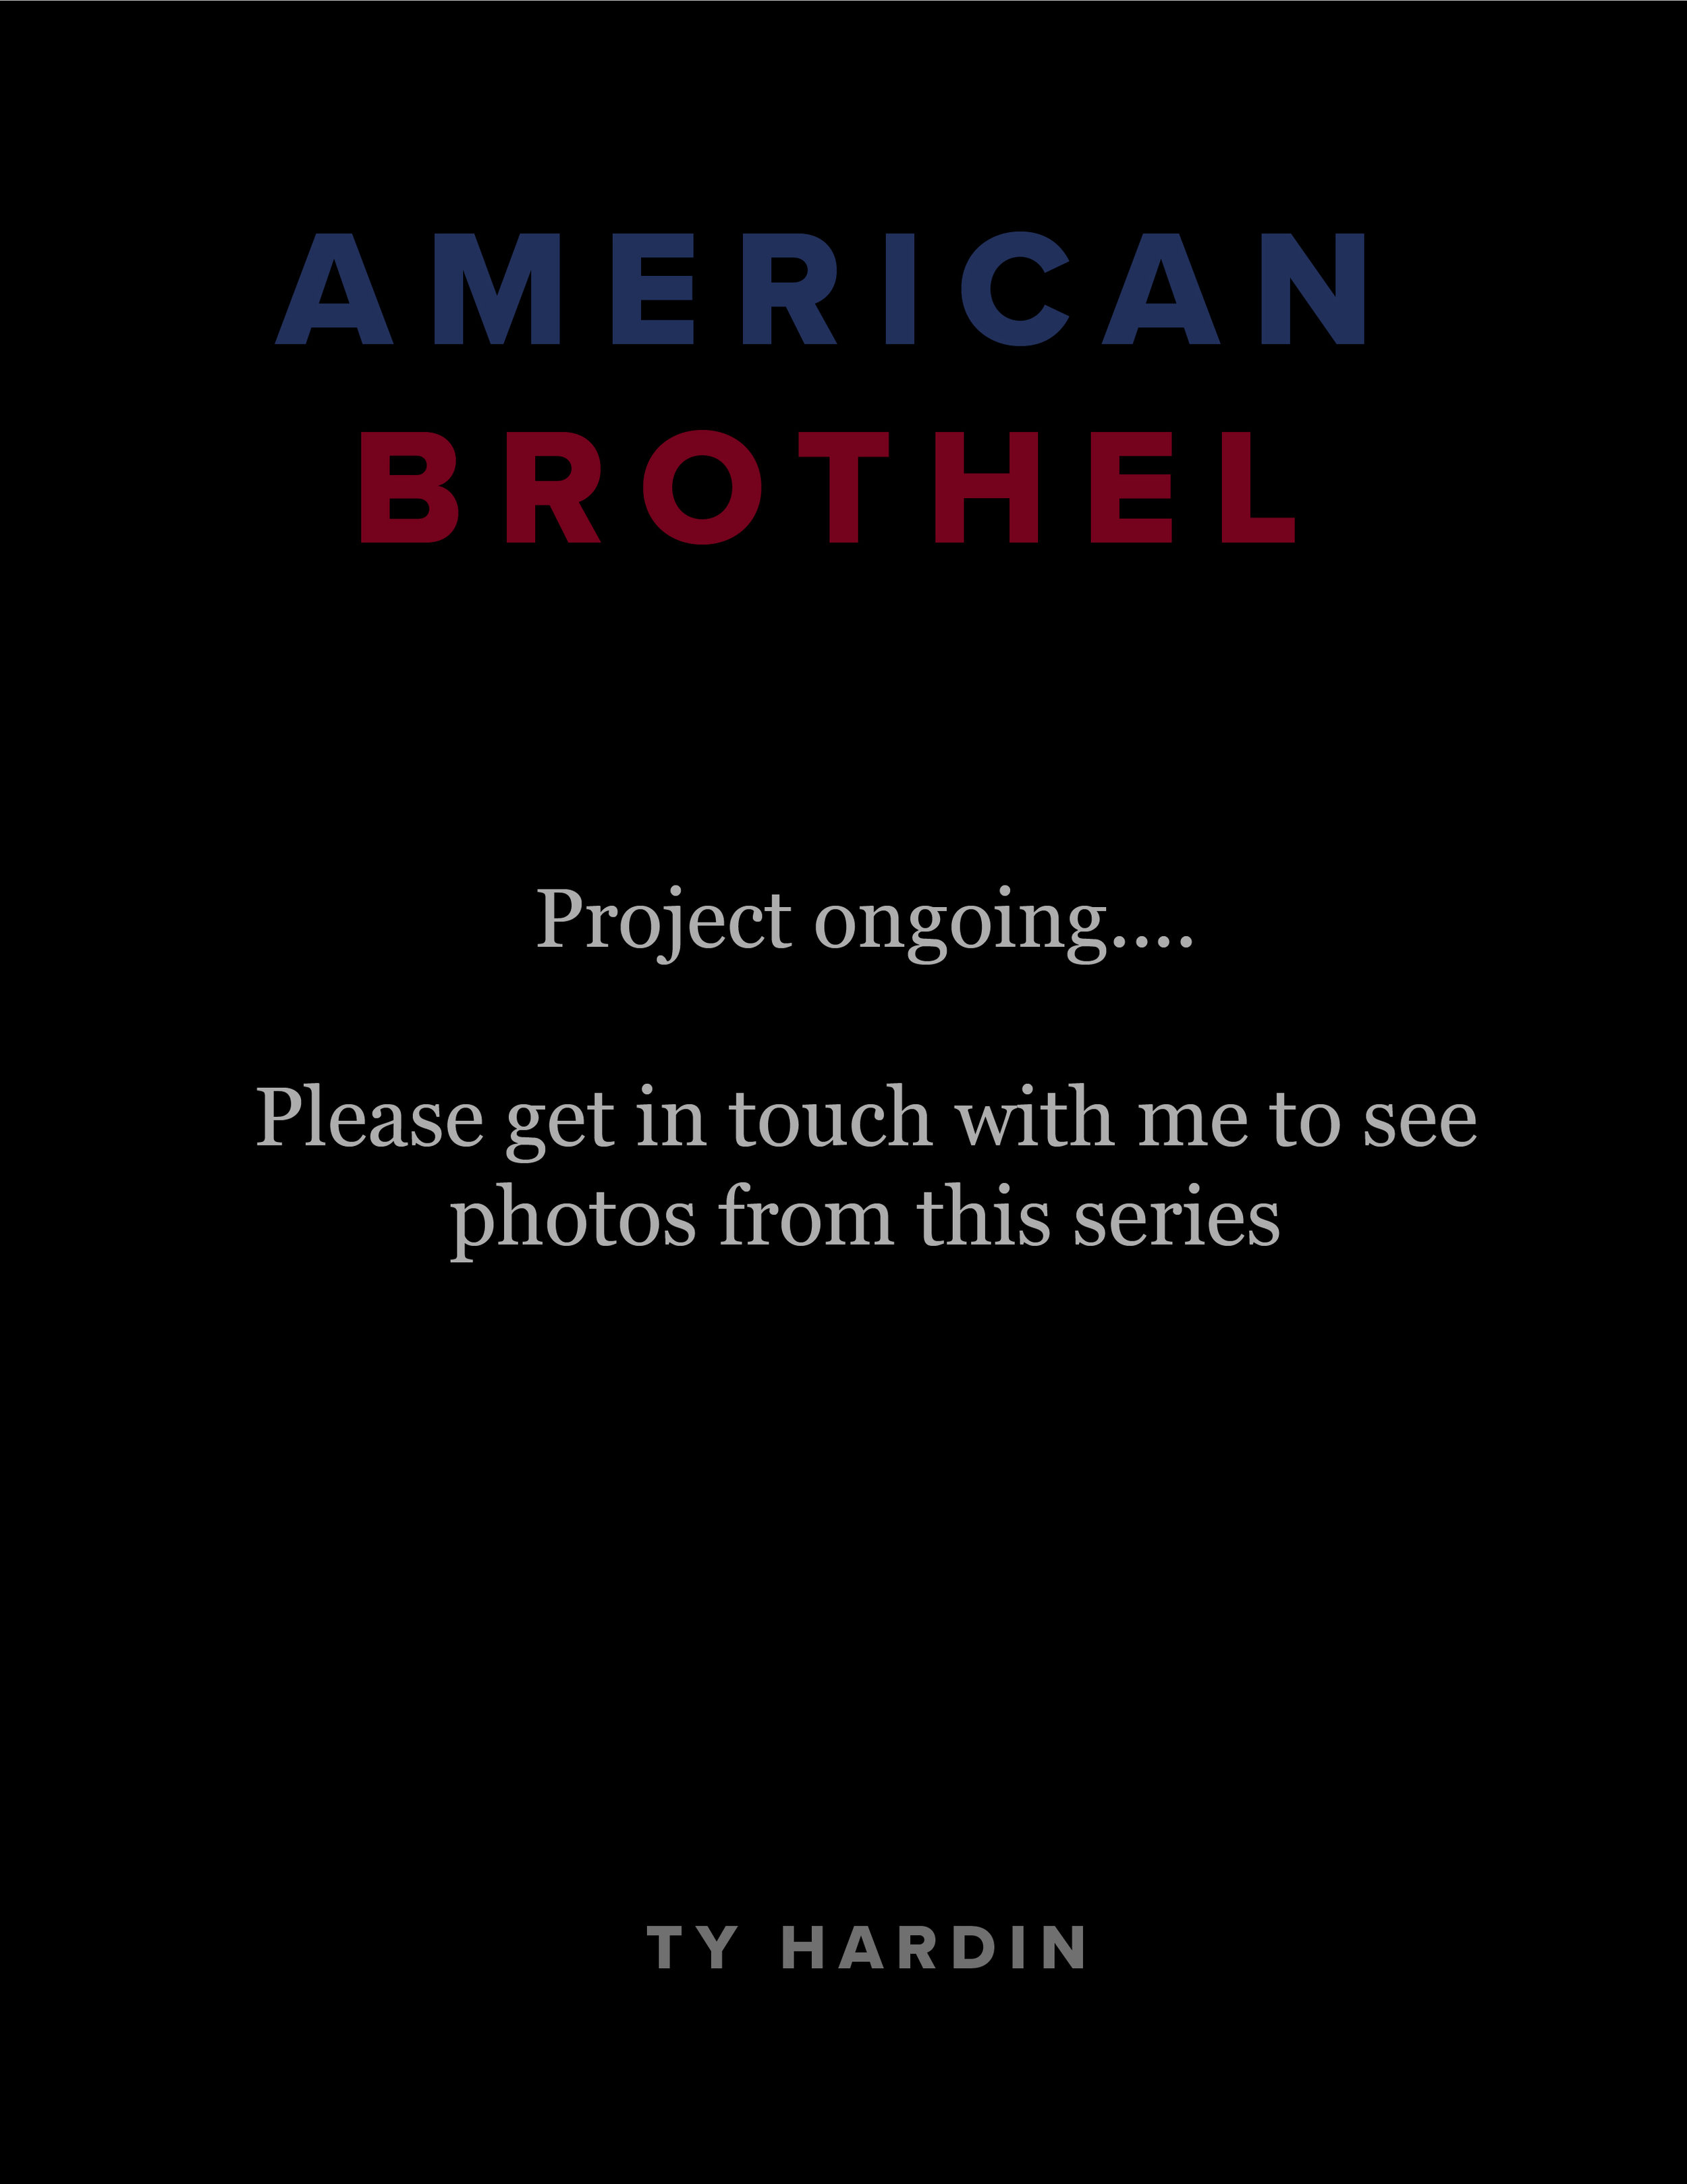 Ty-Hardin-American-Brothel-Description.jpg